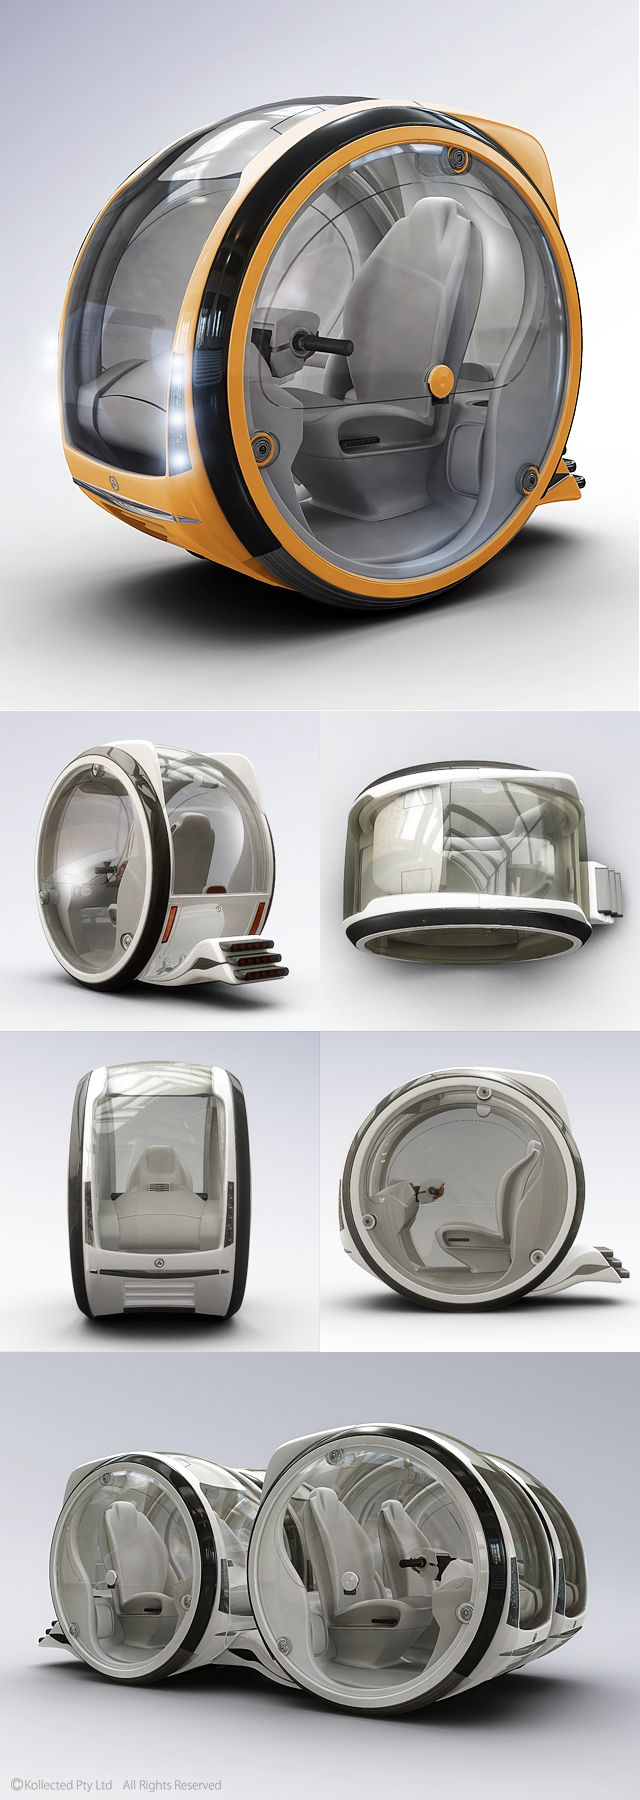 SNAP! by Nick Kaloterakis [Futuristic Vehicles: http://futuristicnews.com/category/future-transportation/]www.SELLaBIZ.gr ΠΩΛΗΣΕΙΣ ΕΠΙΧΕΙΡΗΣΕΩΝ ΔΩΡΕΑΝ ΑΓΓΕΛΙΕΣ ΠΩΛΗΣΗΣ ΕΠΙΧΕΙΡΗΣΗΣ BUSINESS FOR SALE FREE OF CHARGE PUBLICATION